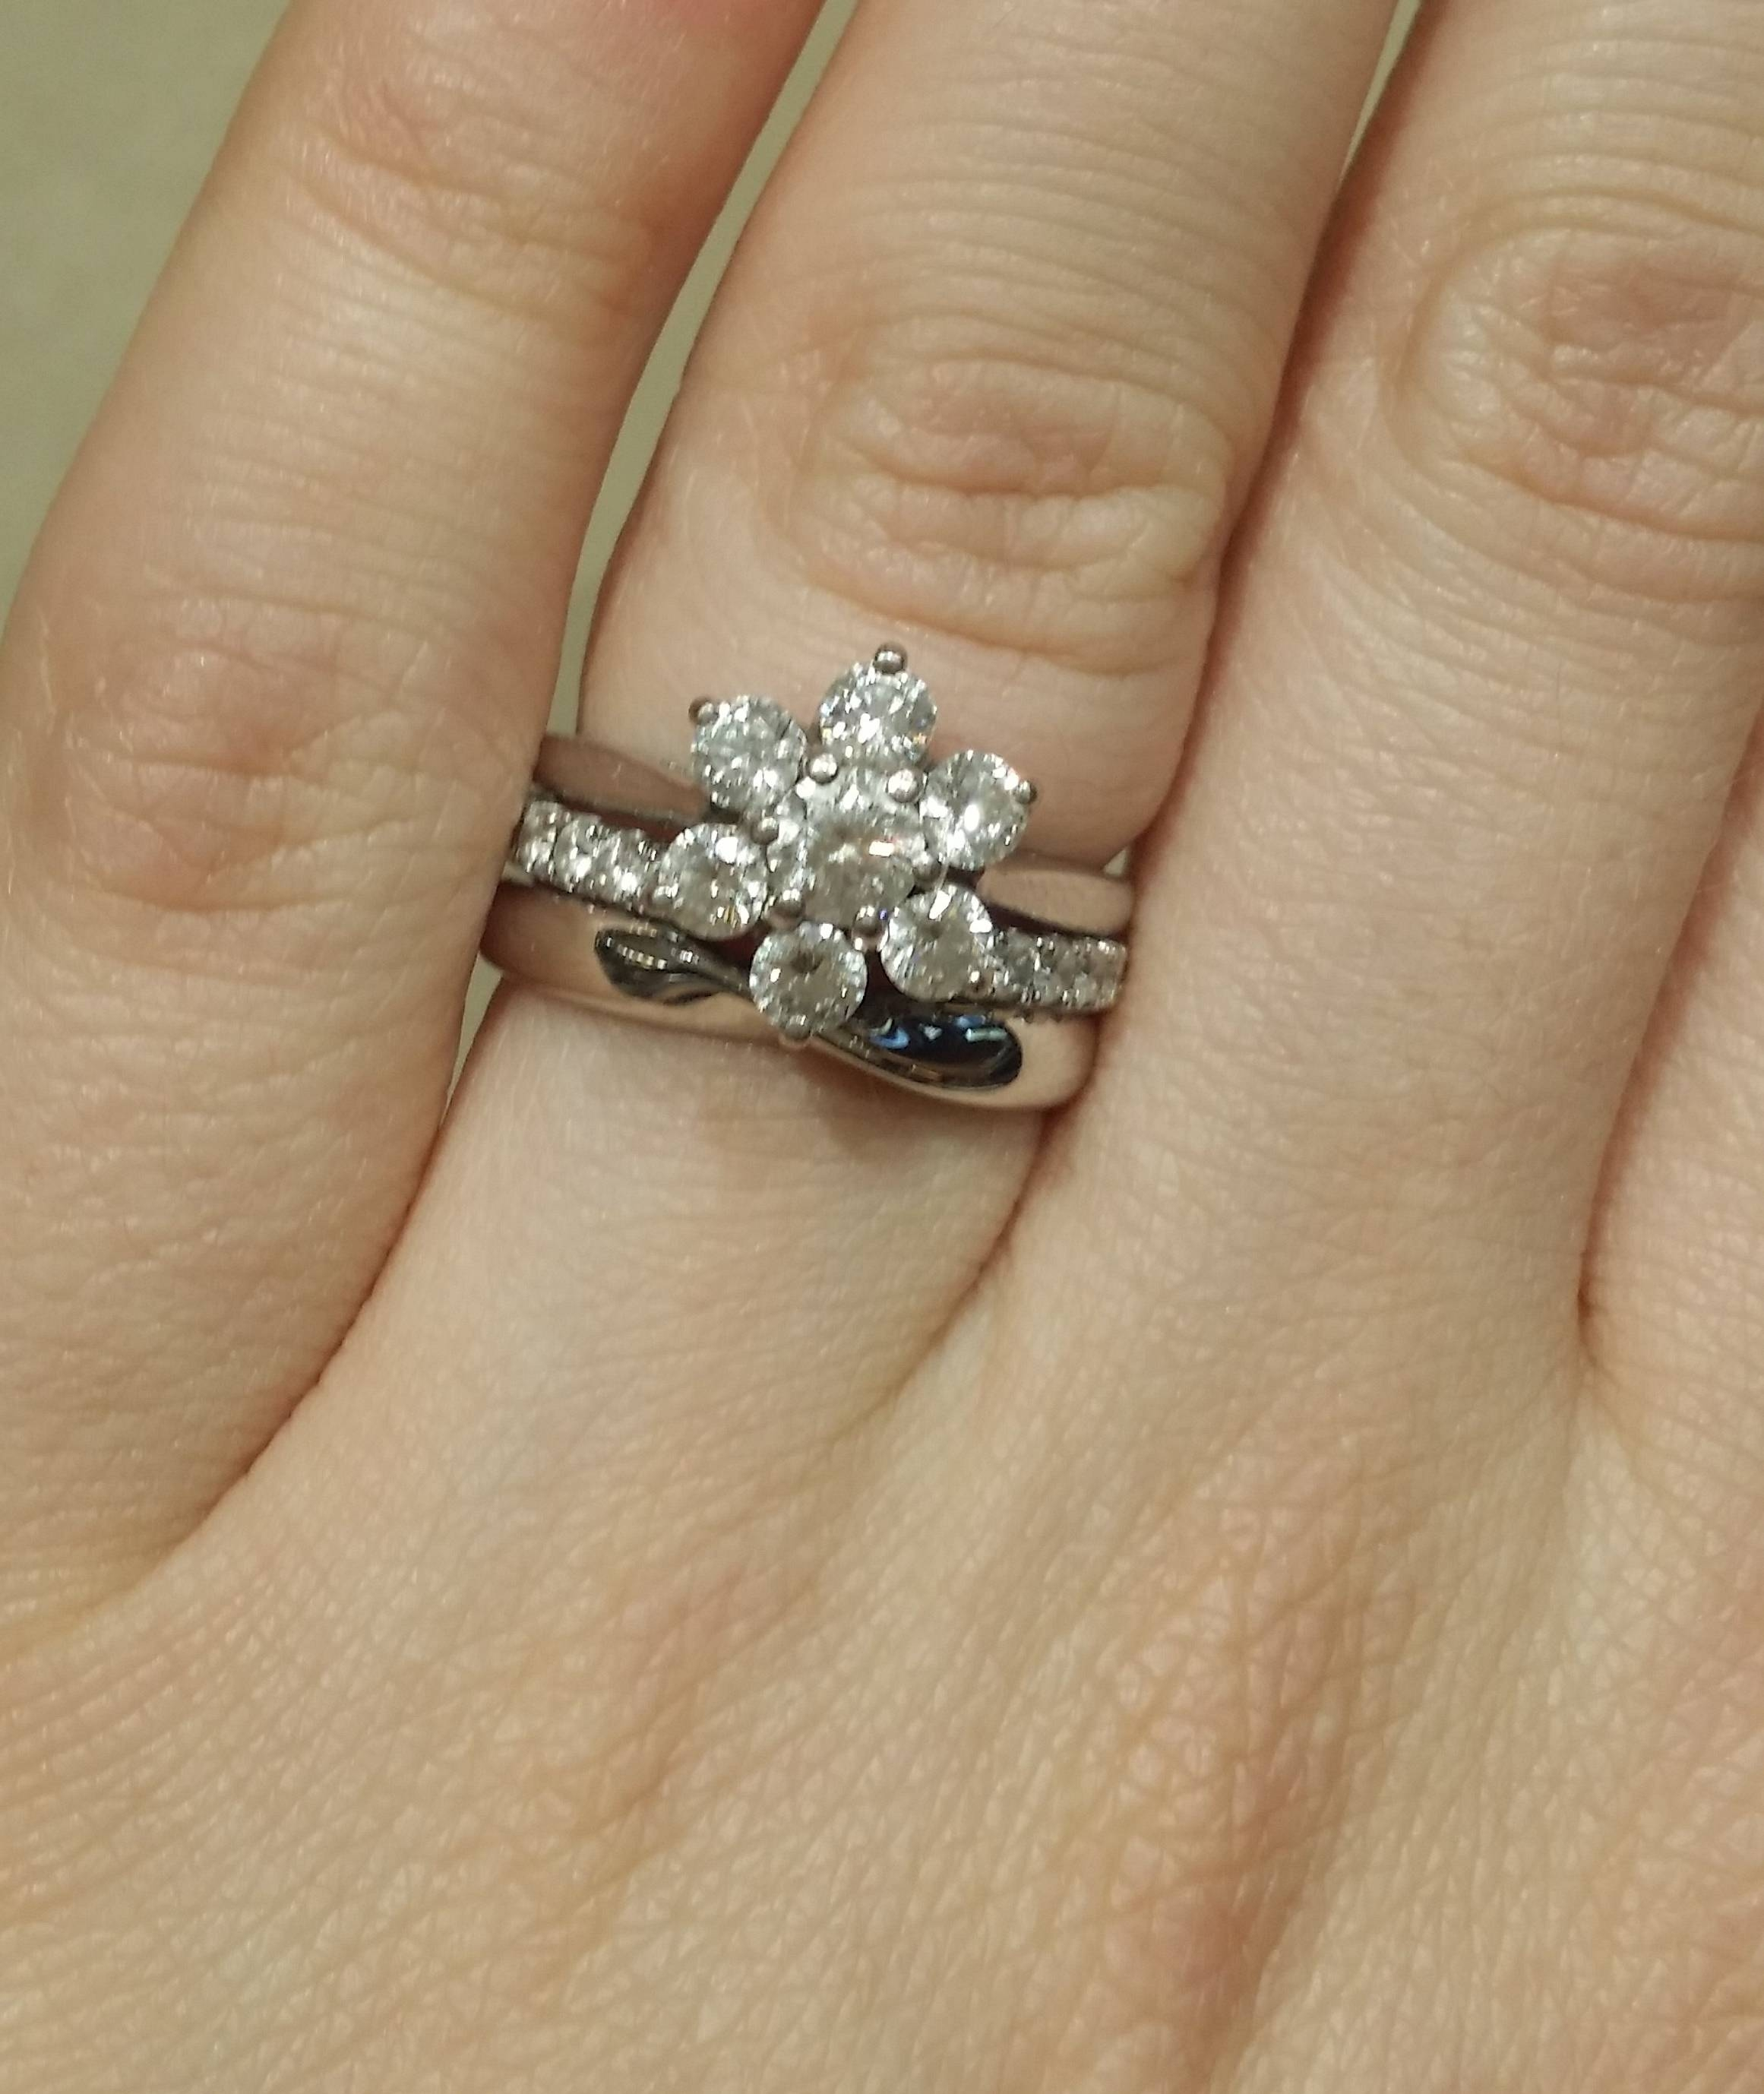 Can I See Your Ribbon/twisted Wedding Bands? – Weddingbee Intended For Wedding Bands For Twisted Engagement Rings (View 3 of 15)